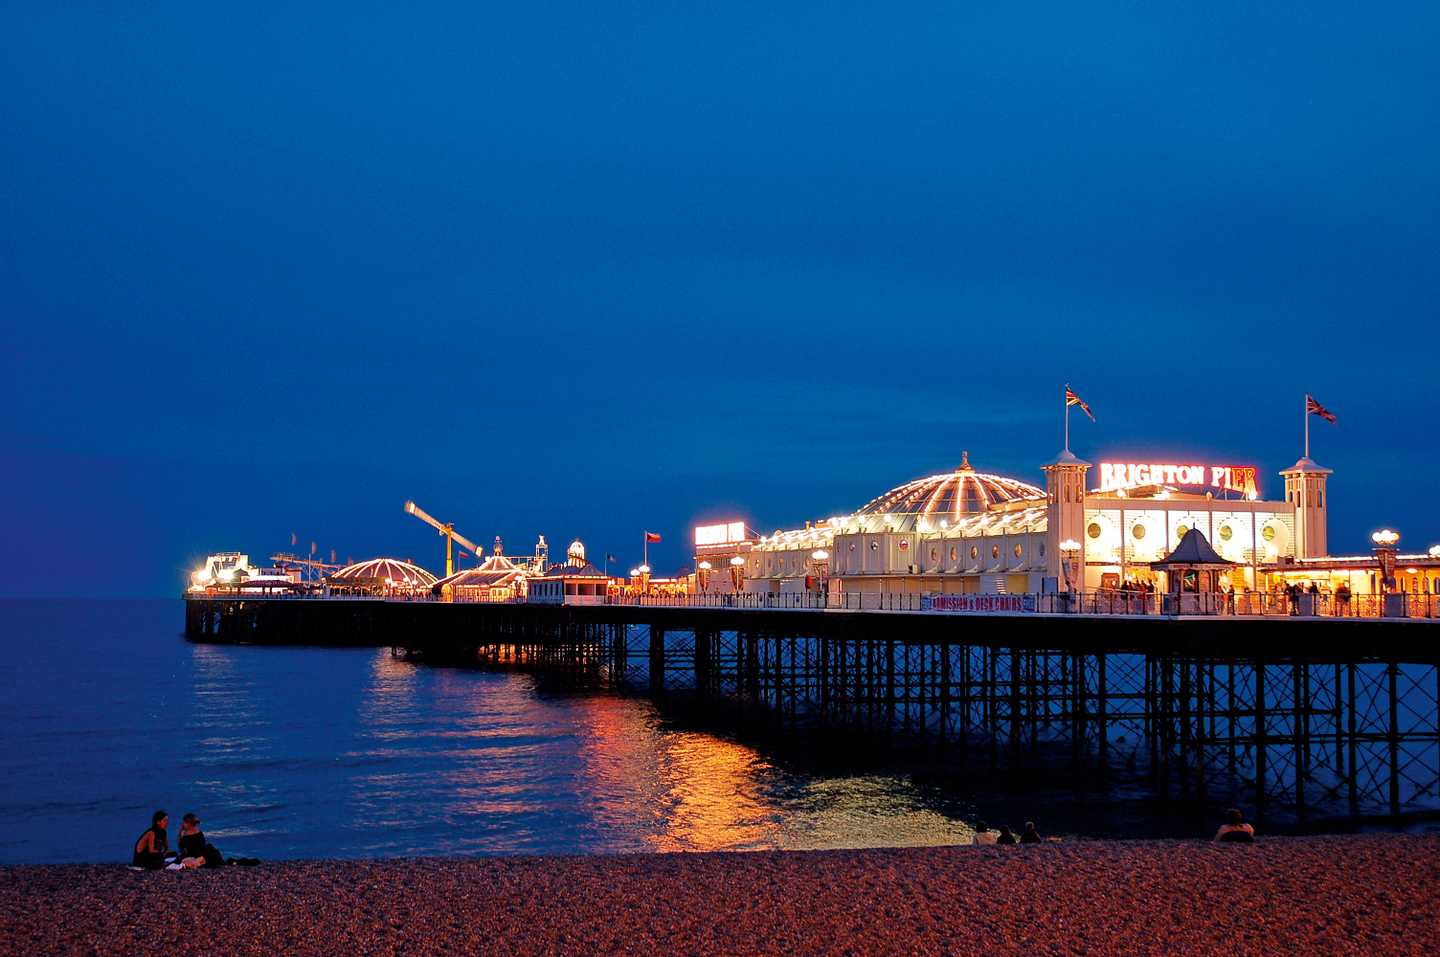 Brighton Pier lights at night